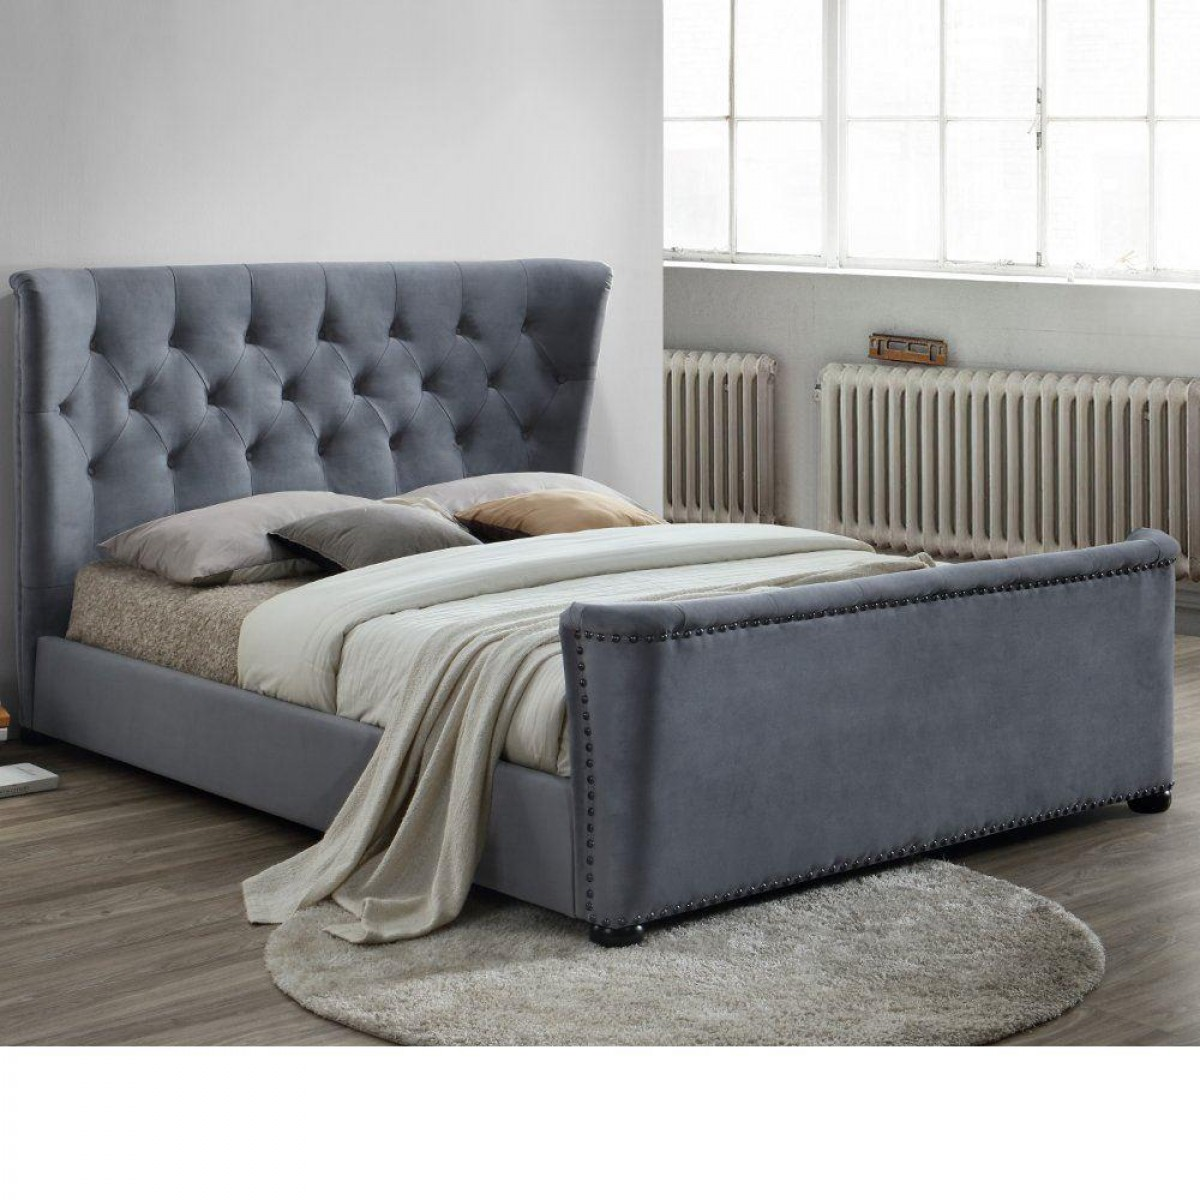 Barkley Grey Velvet Fabric Winged Bed